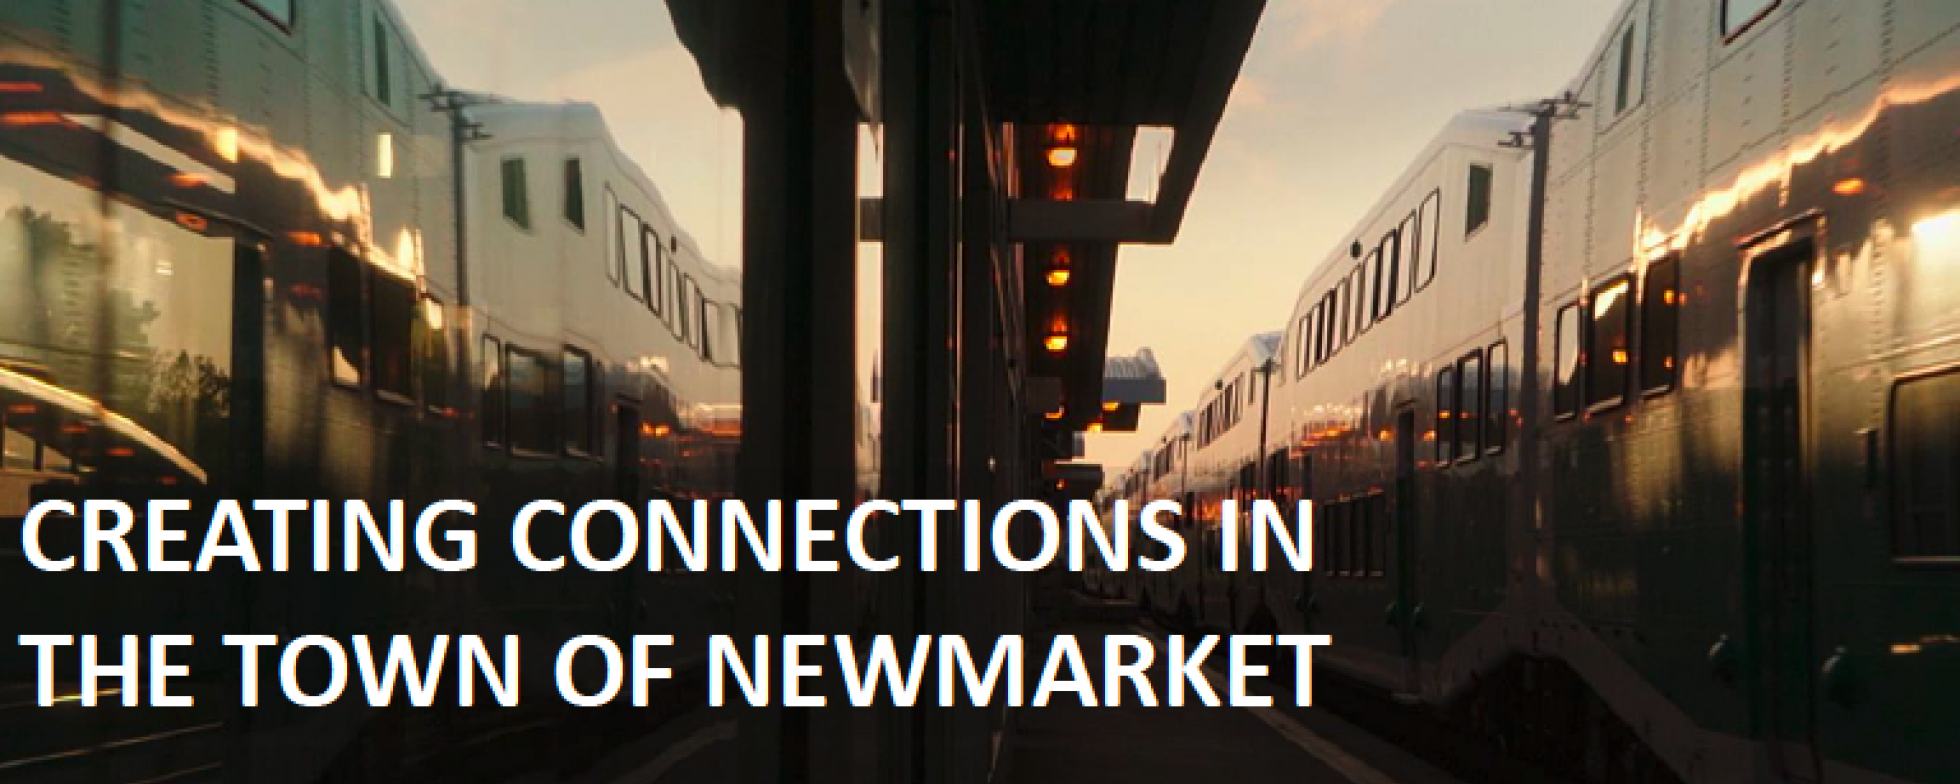 Creating Connections in The Town of Newmarket presentation cover